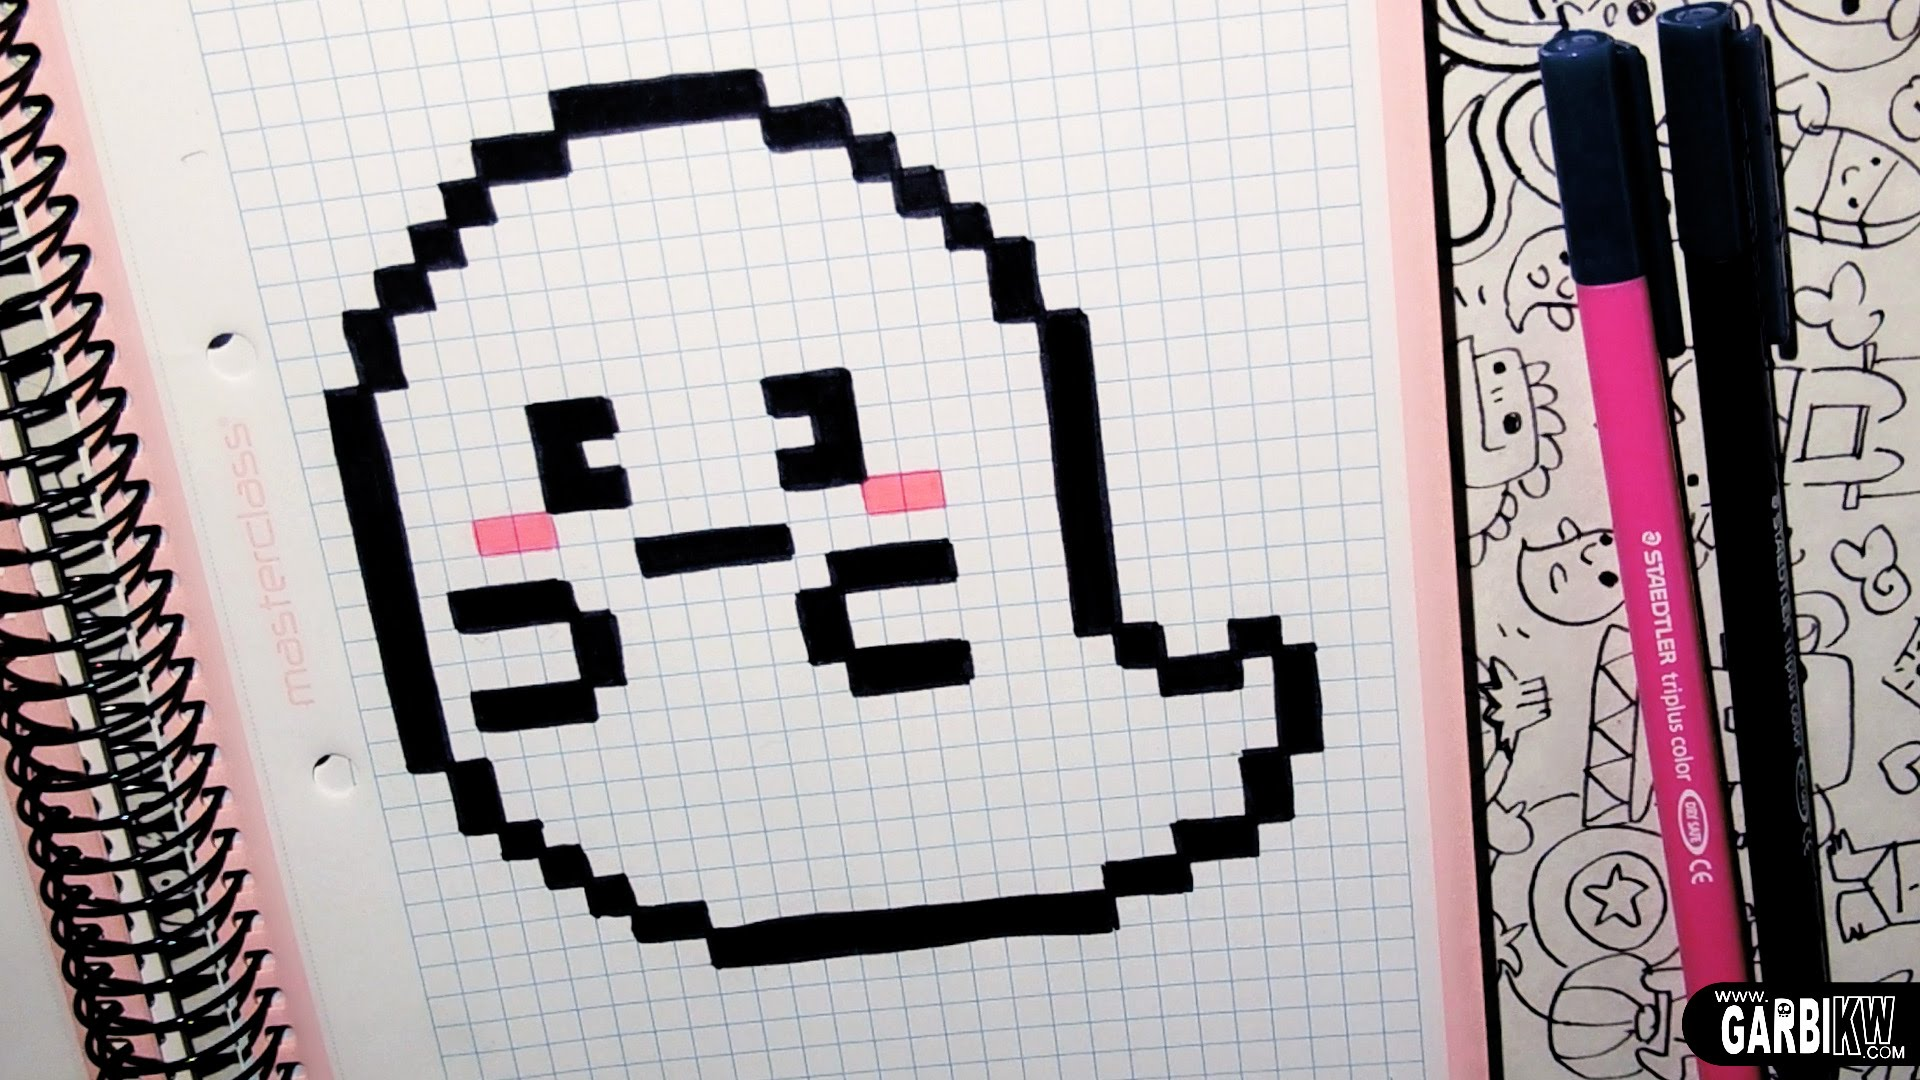 Drawn pixel art garbi kw Ghost Art YouTube KW Kawaii